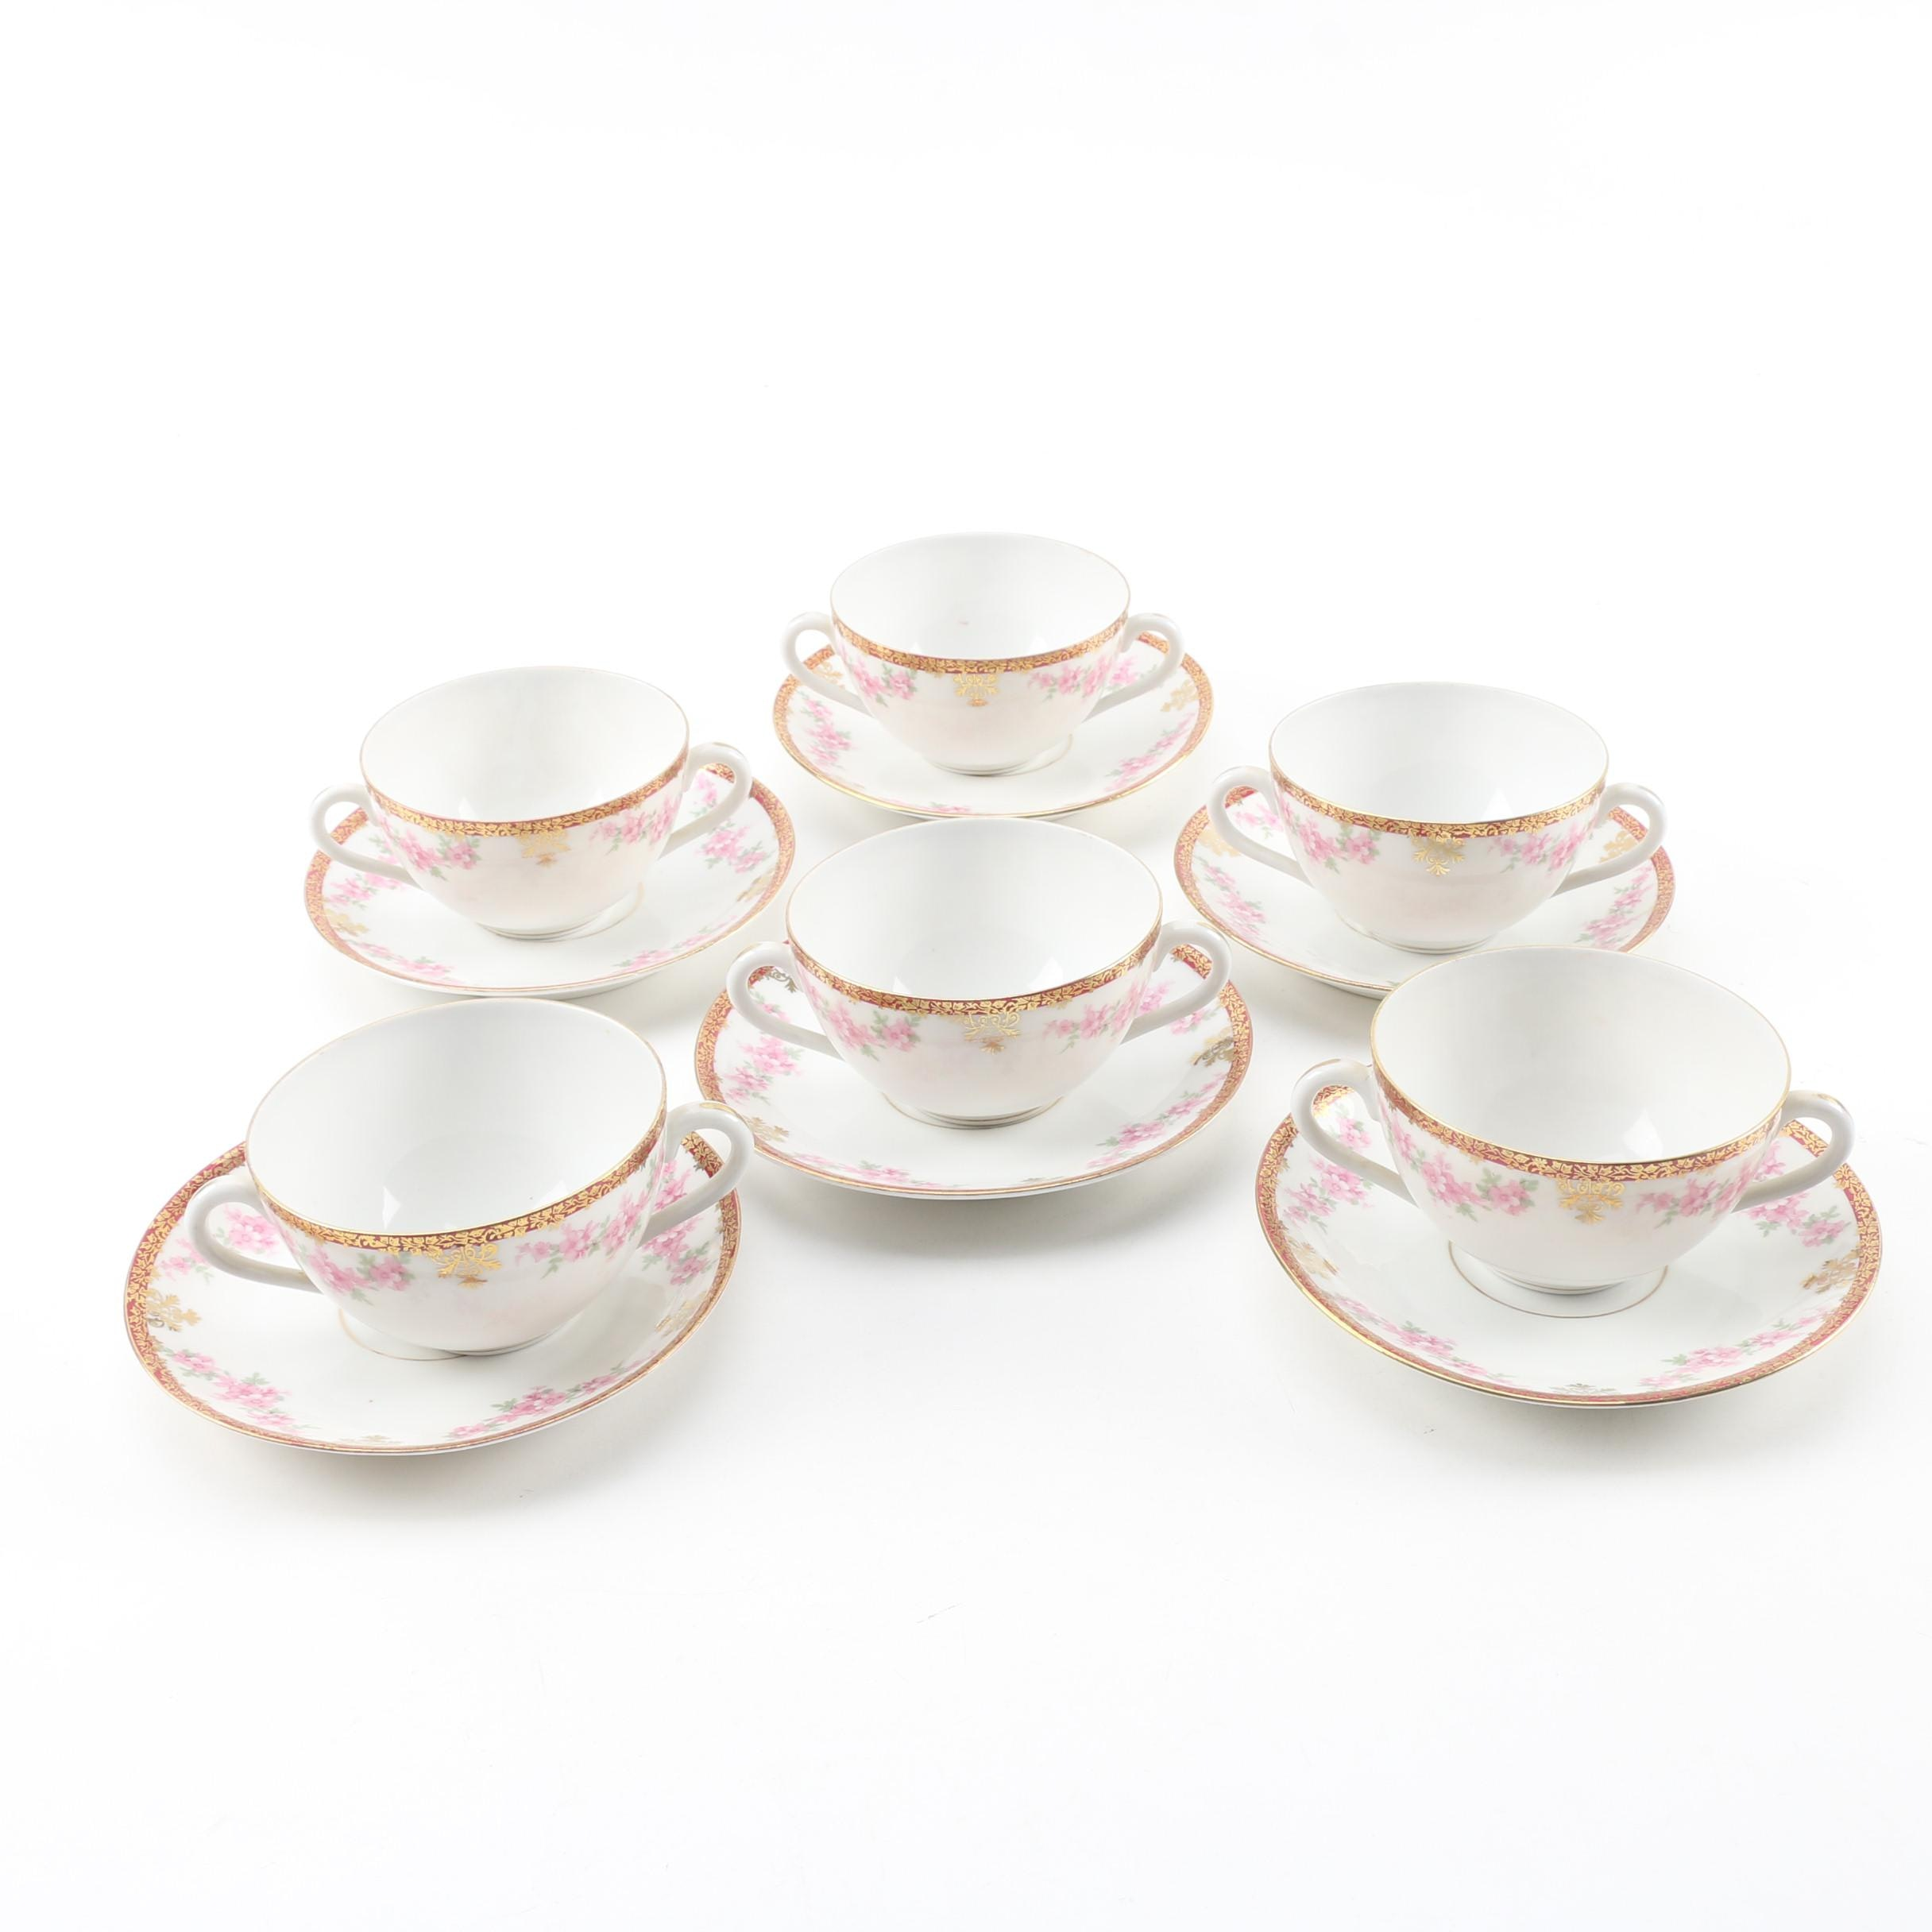 L. Straus & Sons Carlsbad Porcelain Bouillon Cups and Saucers, 20th Century